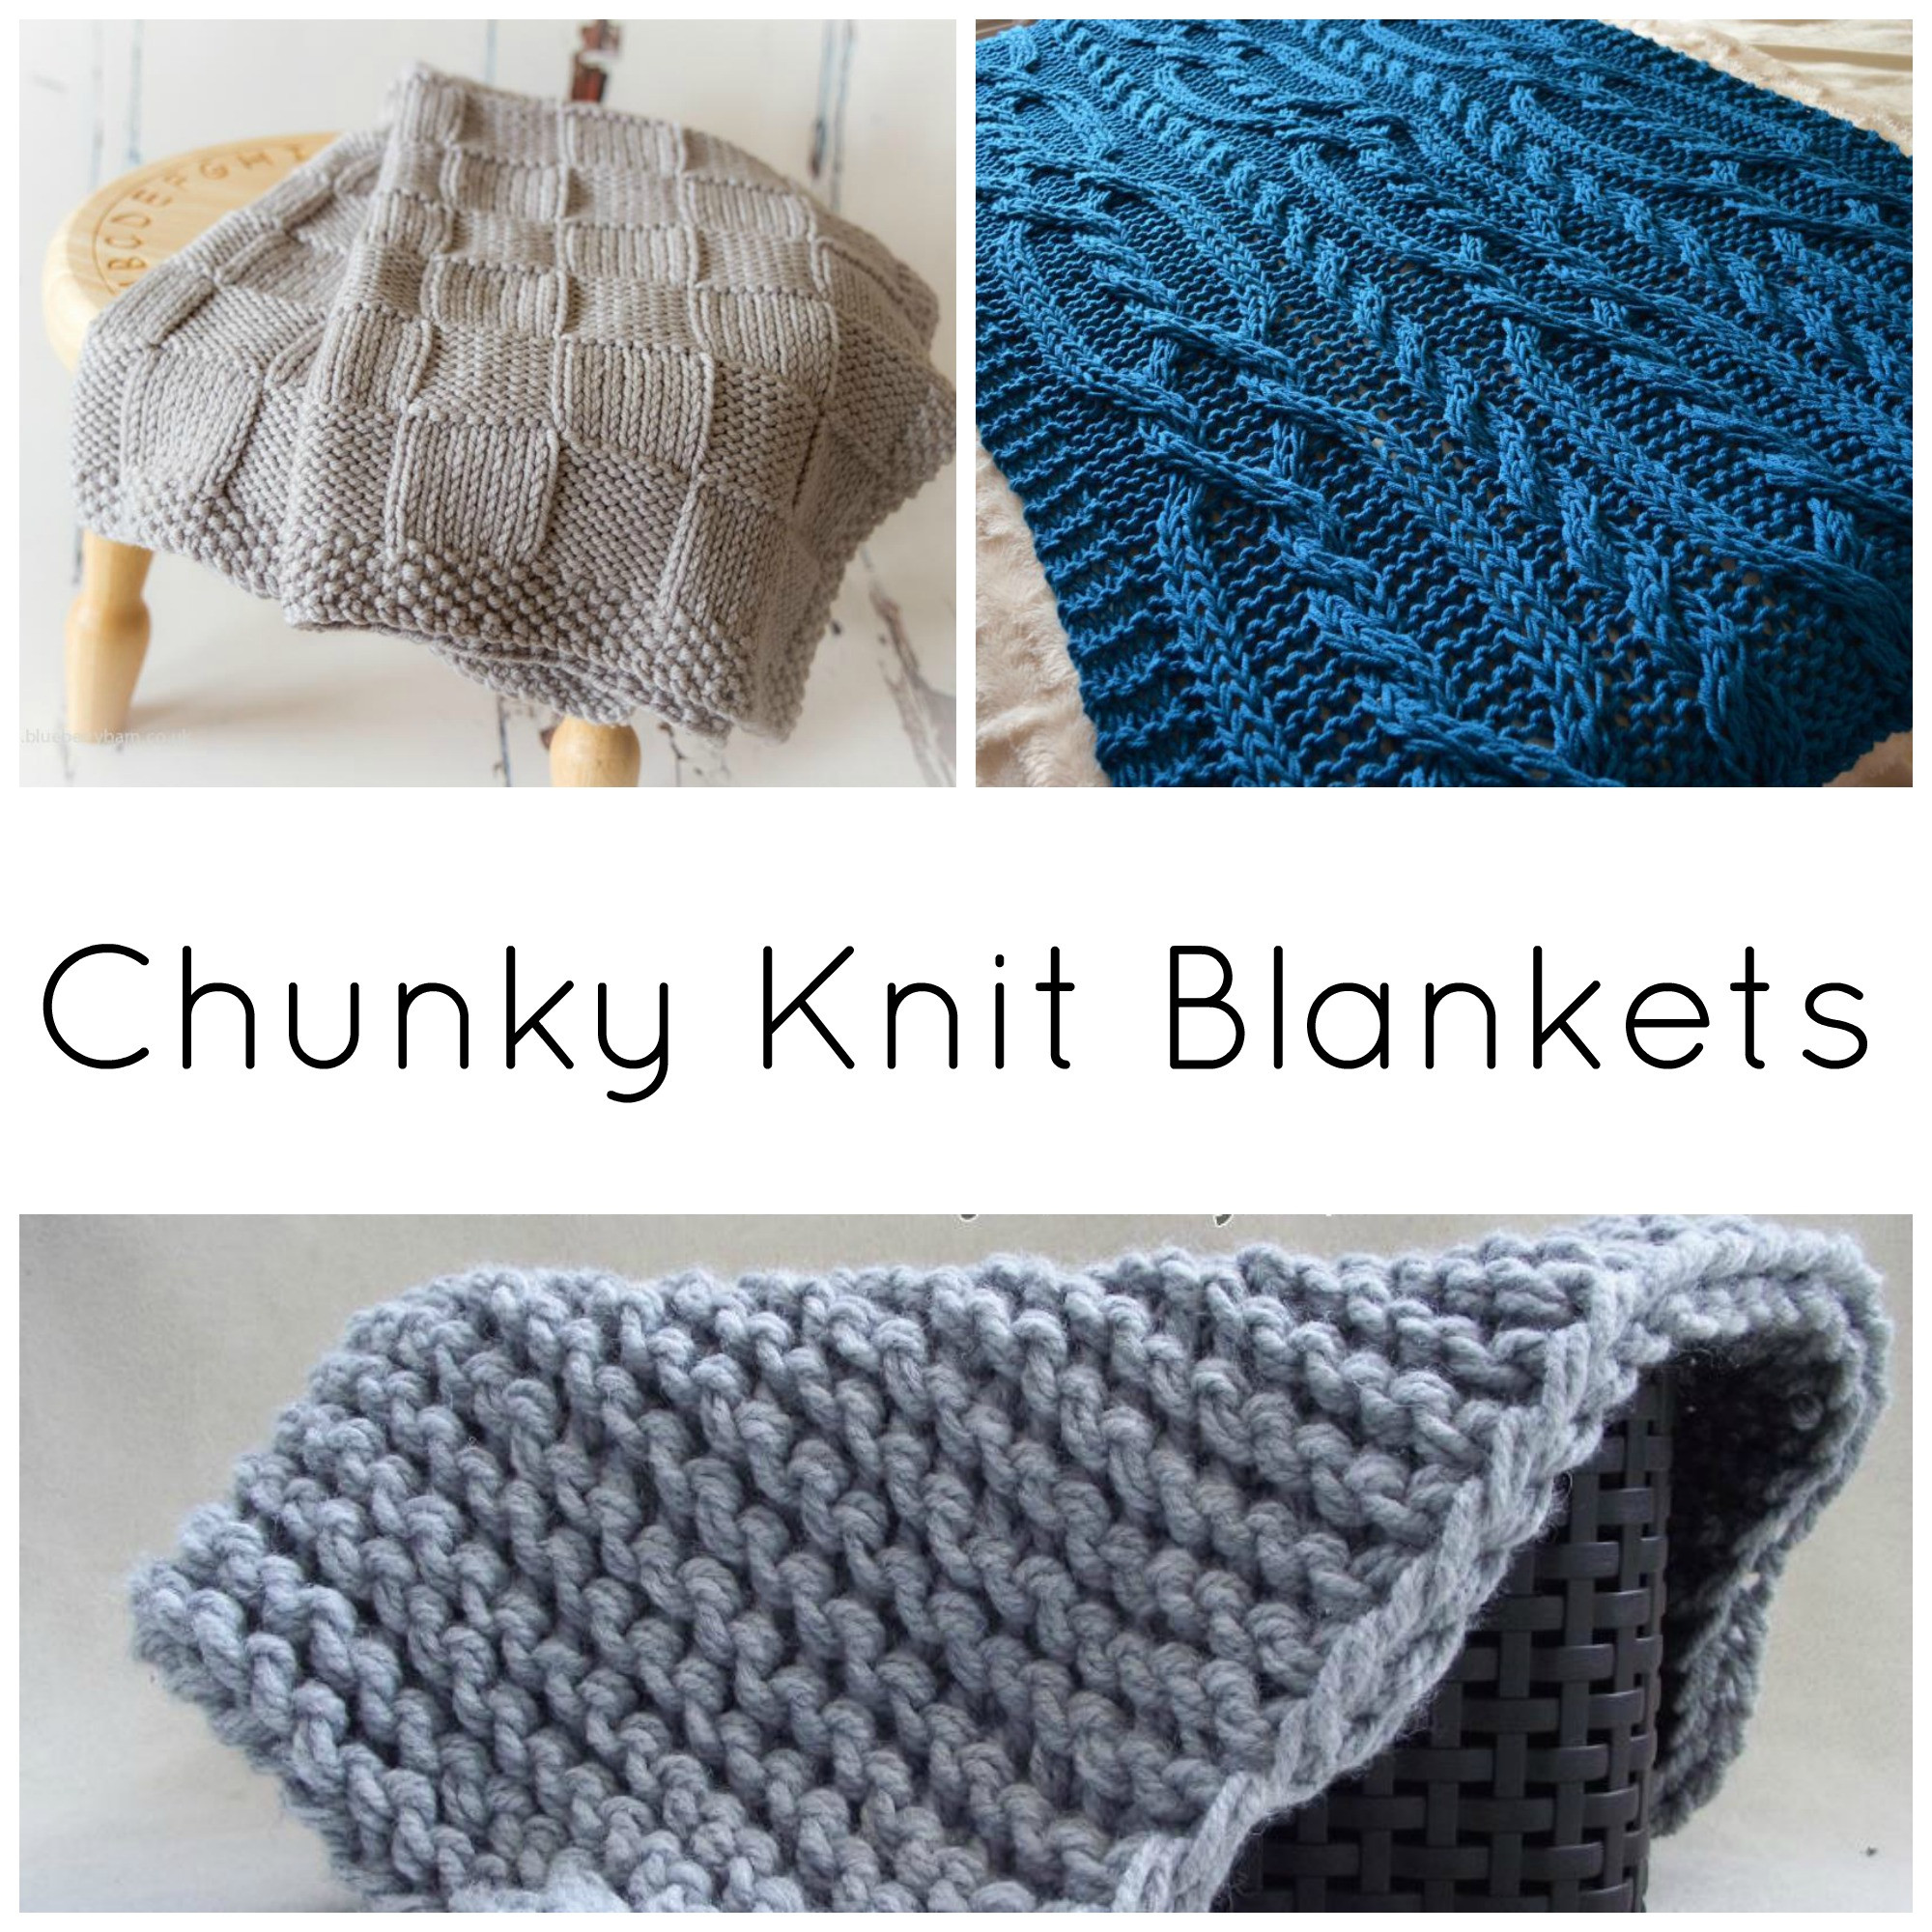 Bulky Knit Blanket Awesome 10 Quick & Cozy Chunky Knit Blanket Patterns On Craftsy Of Top 45 Images Bulky Knit Blanket